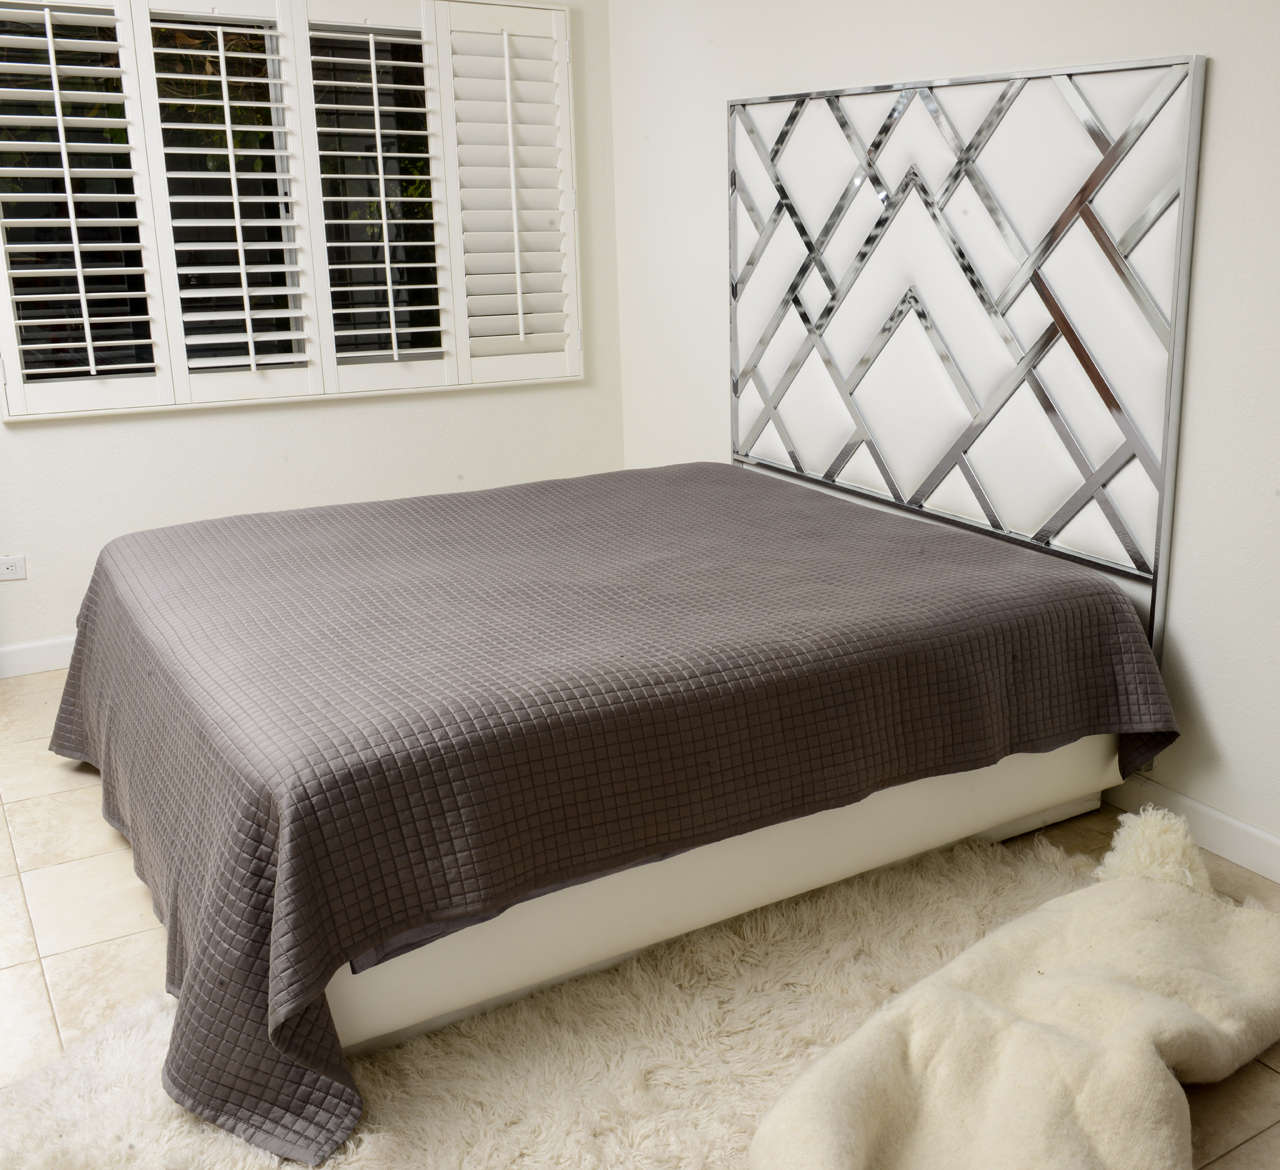 King Size D.I.A Headboard in Chrome and Faux Leather 2